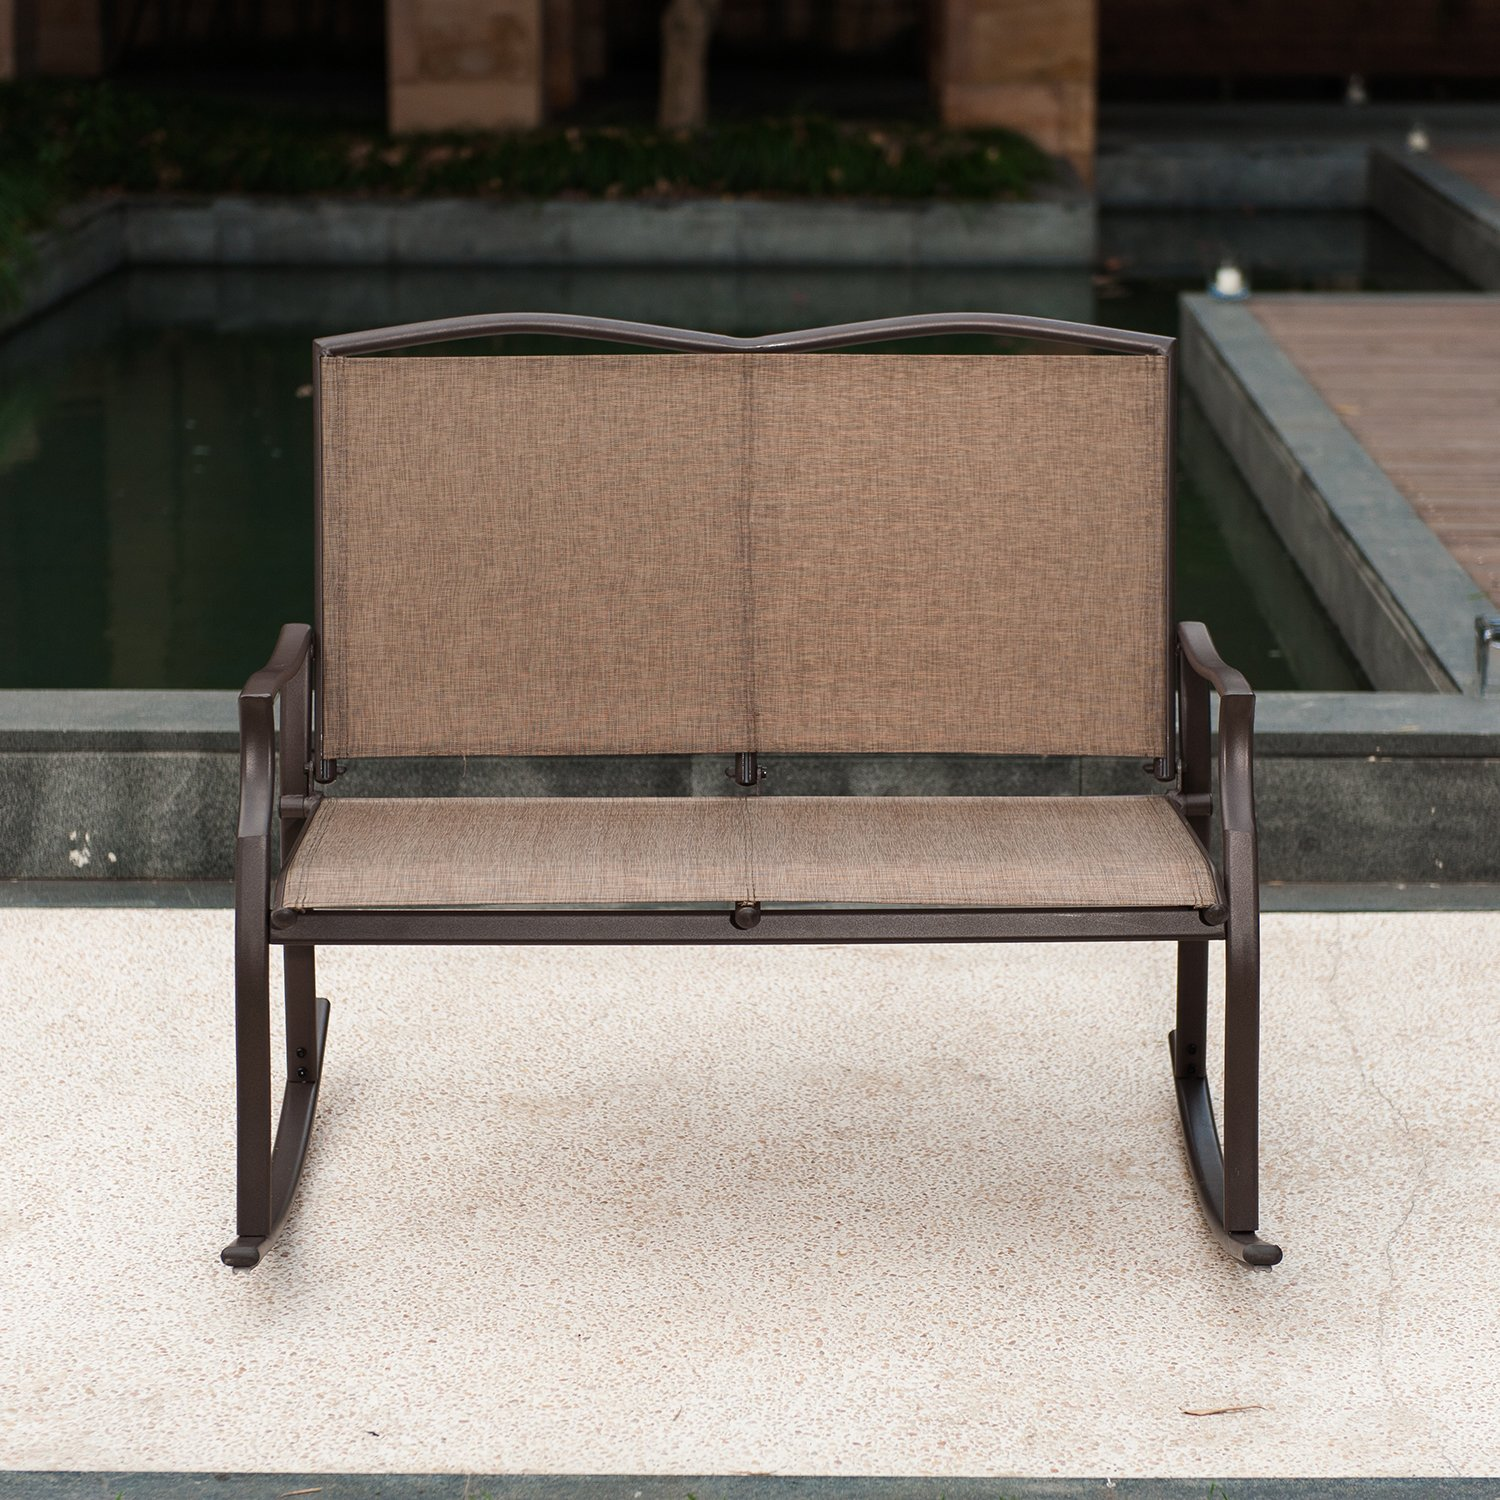 Patio Loveseat Bench, Glider Swing Rocking Chair with Steel Frame for 2 Persons by SLN (Image #3)